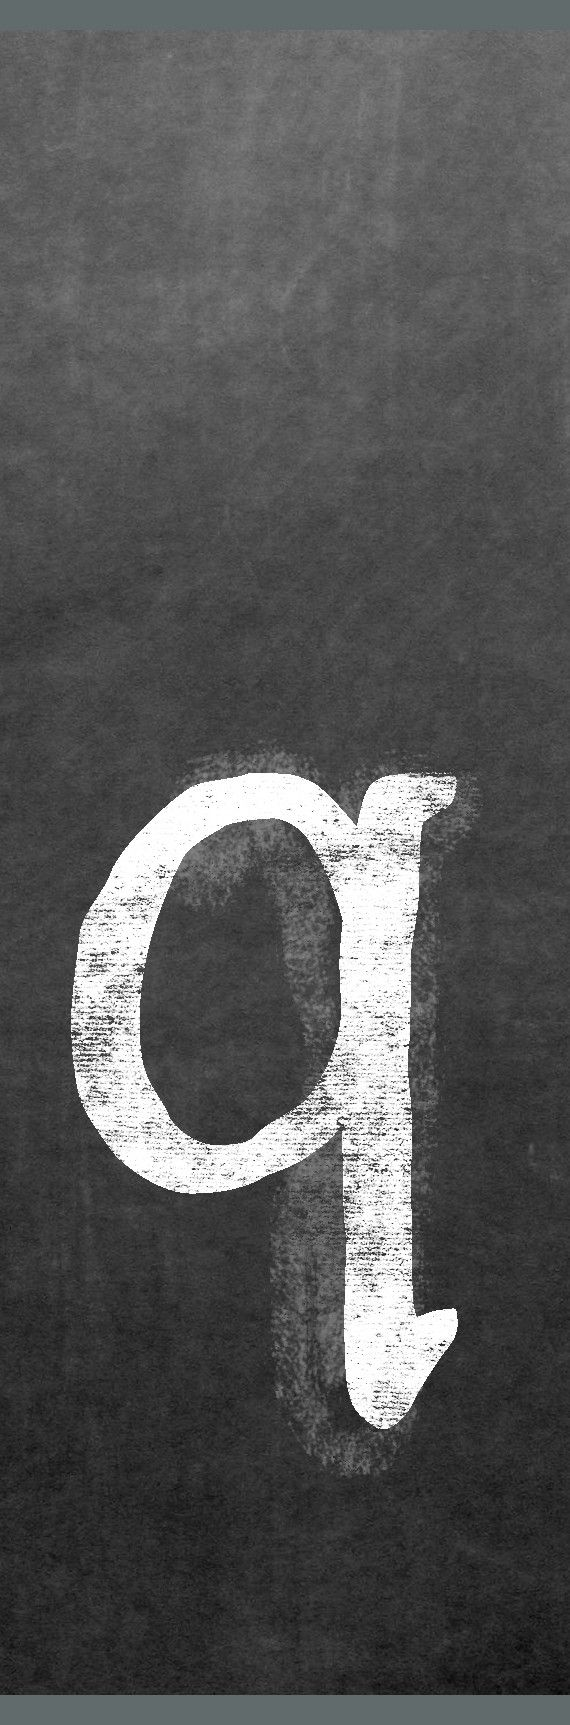 CLQ-001 Chalk lower case letter q